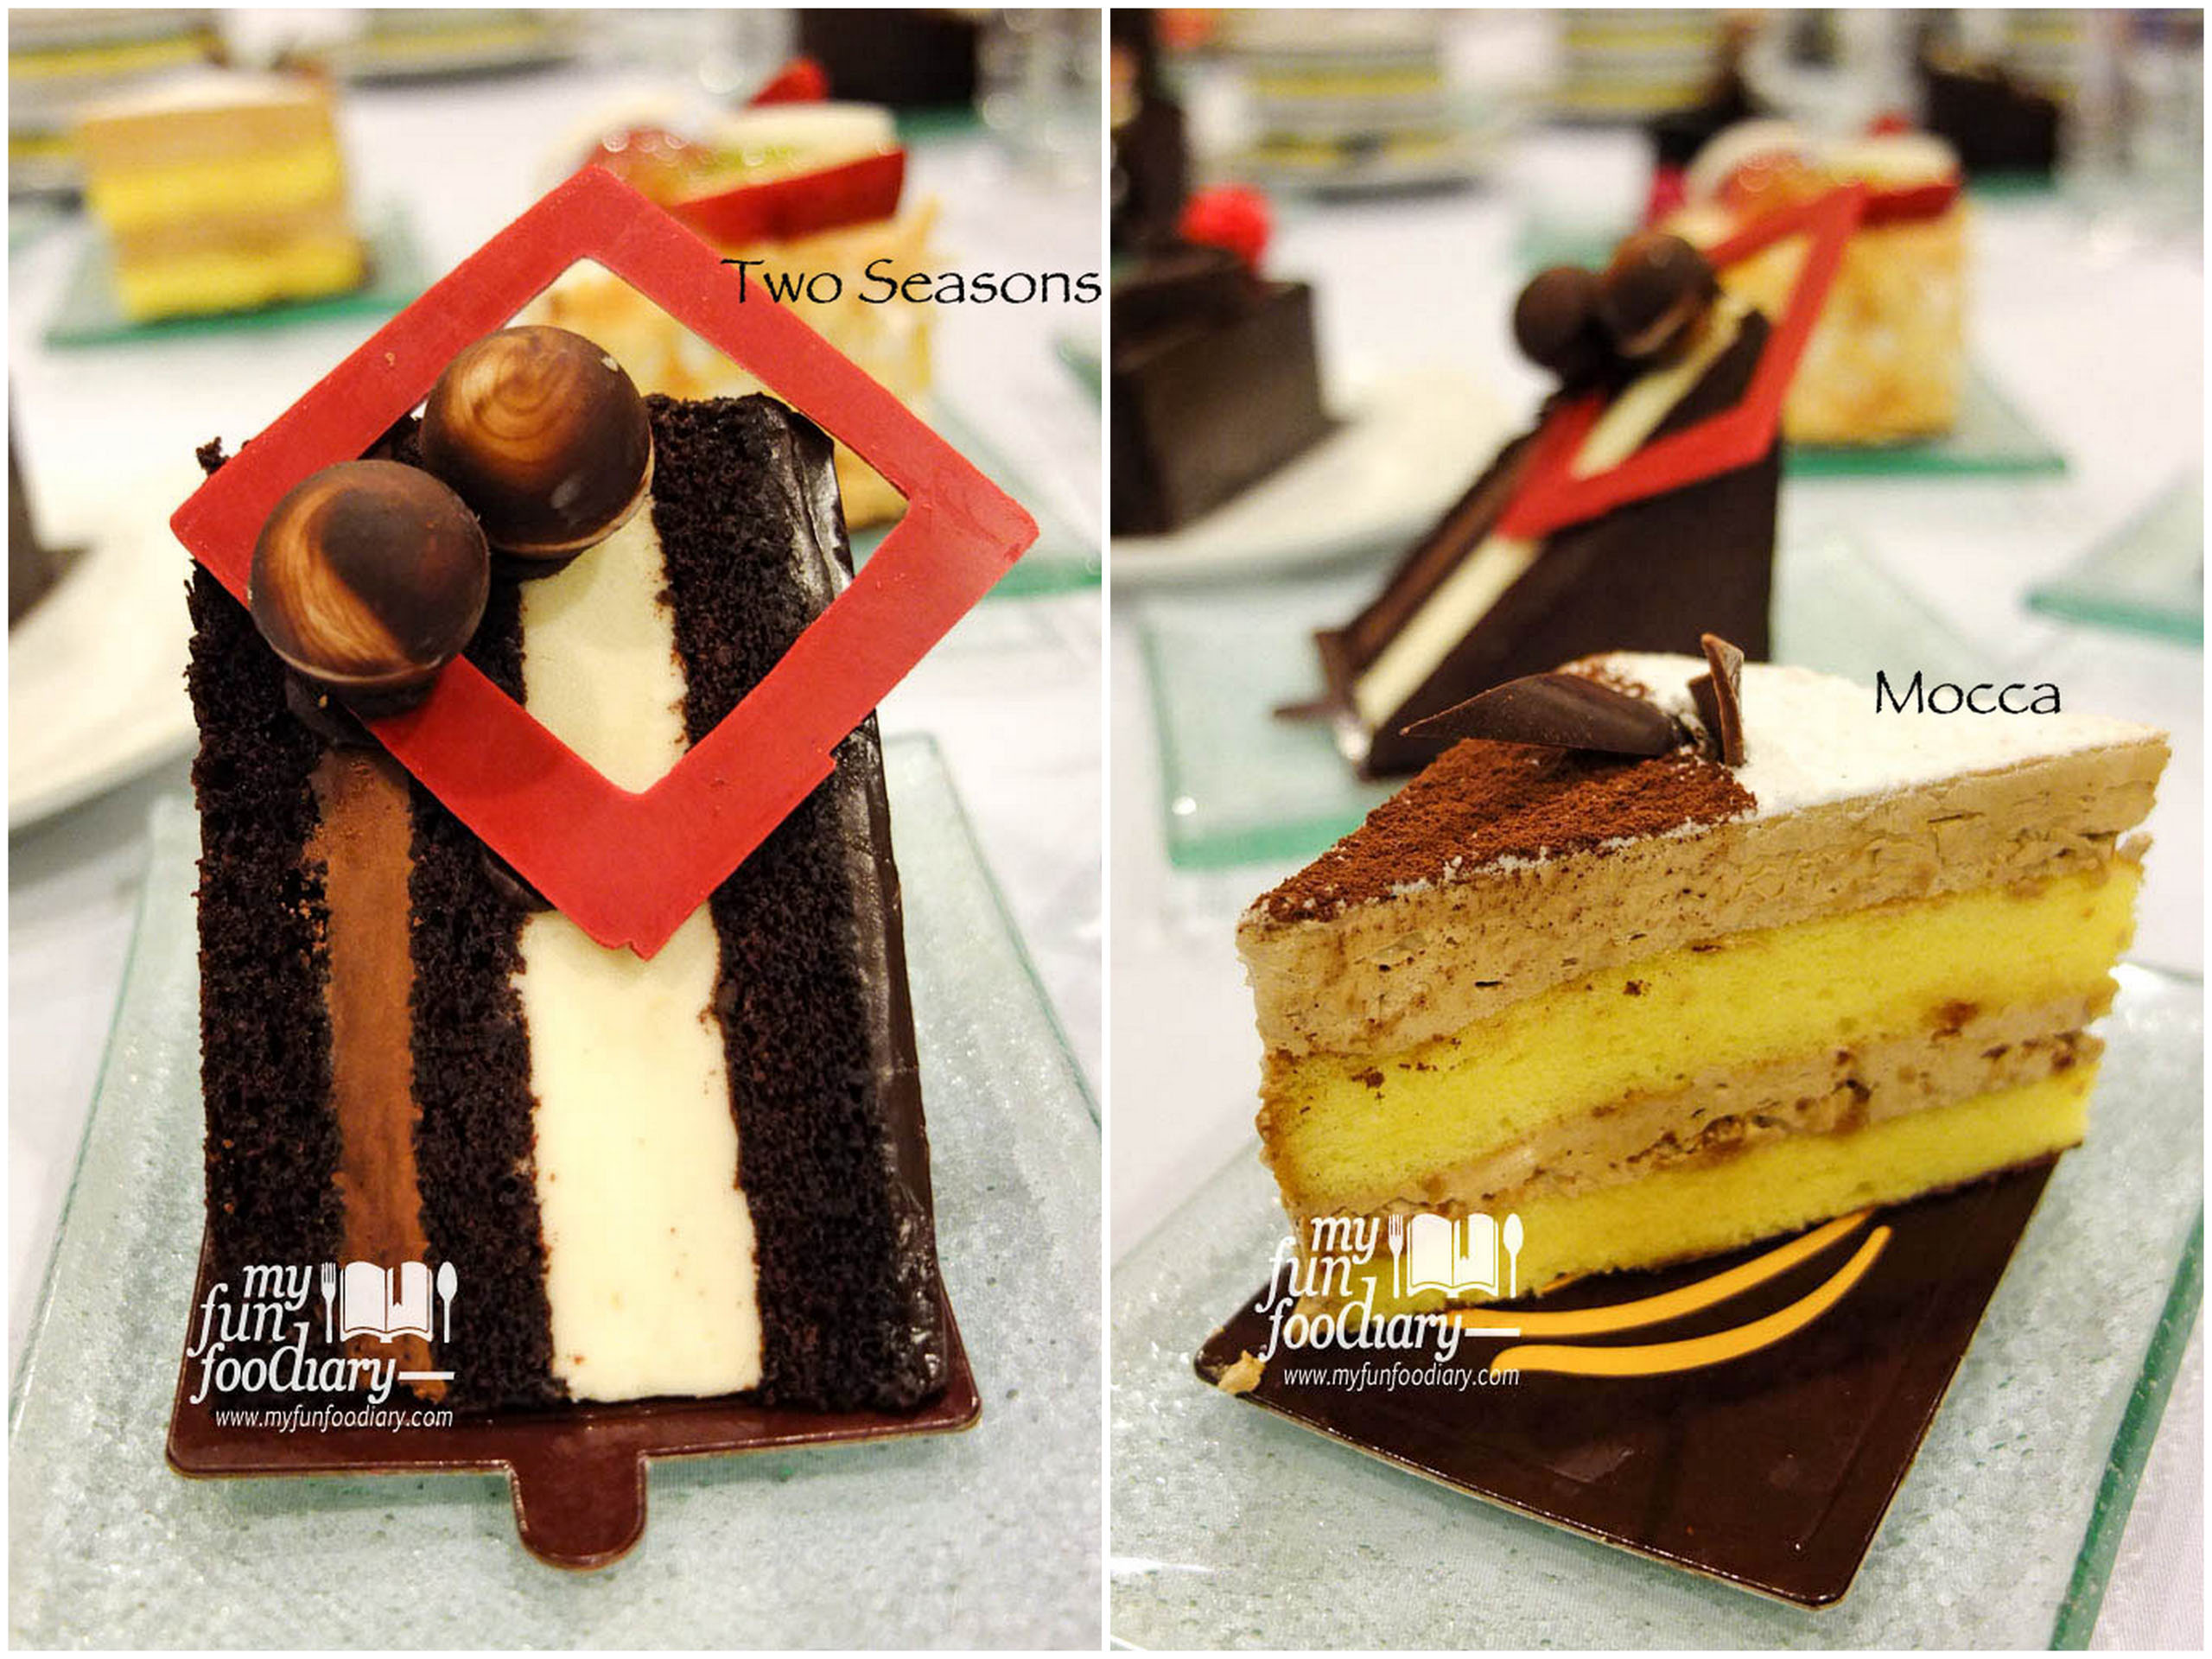 Triple Decker IDR 17.5K – Strawberry Cheesecake IDR 22K – Tiramisu